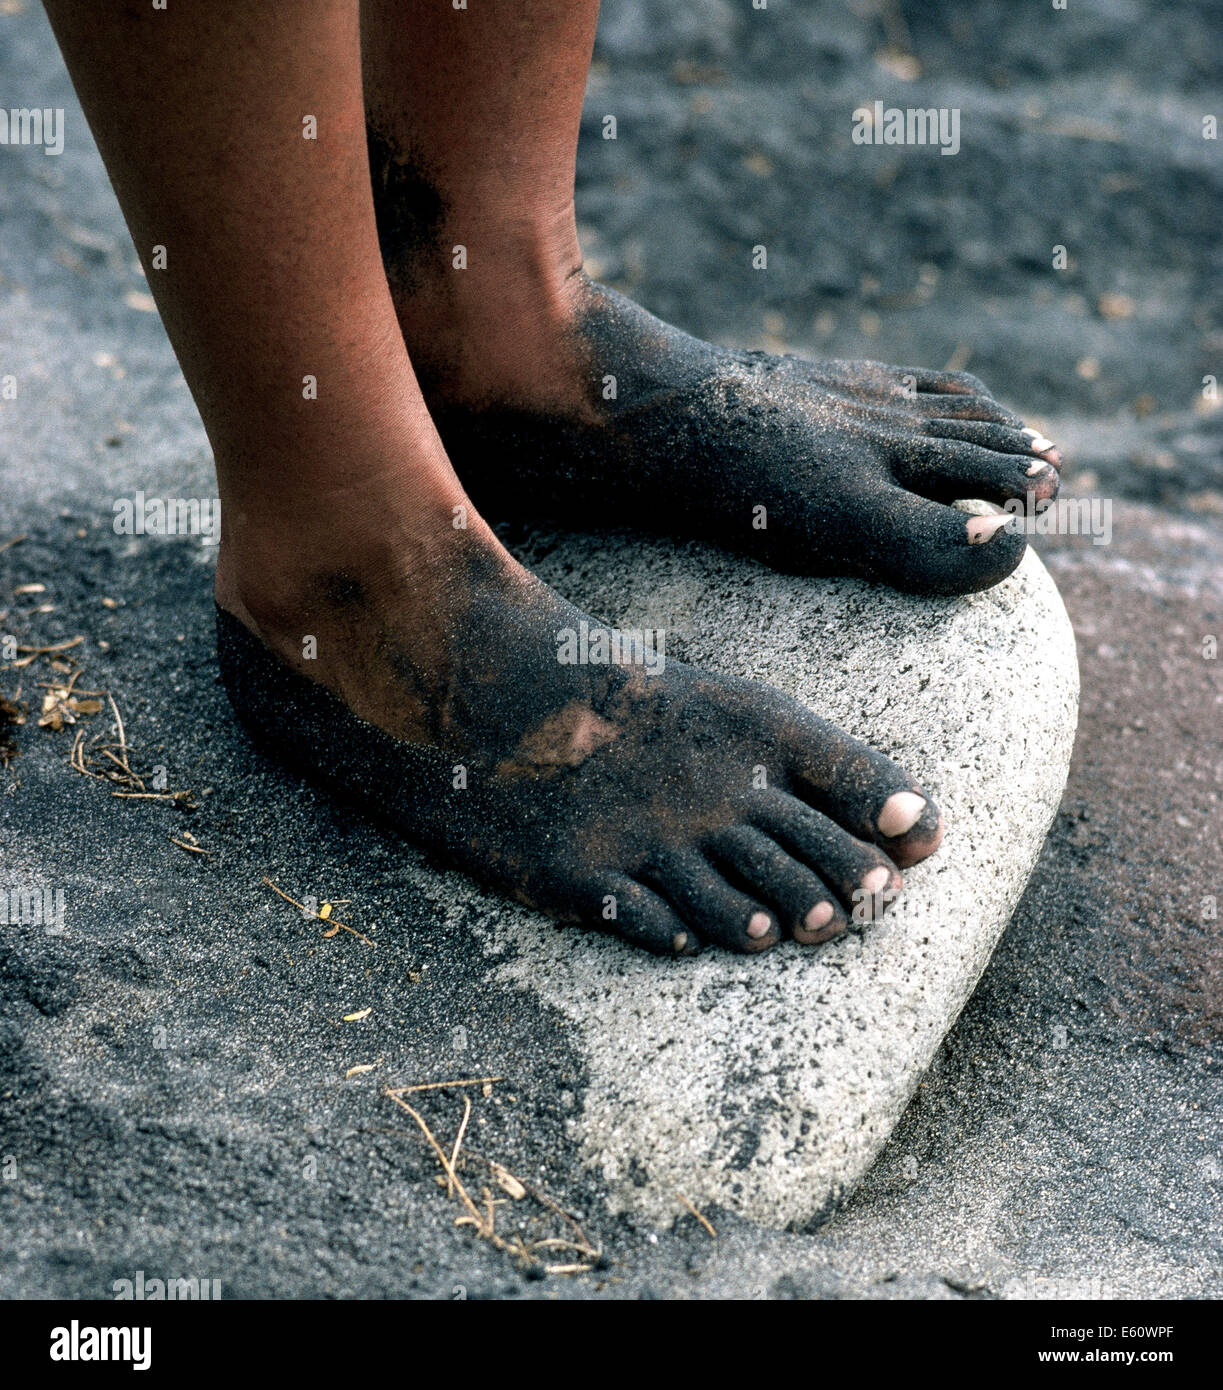 Sticky black sand covers the feet of a beachgoer in Montserrat, a small volcanic island in the Caribbean Sea that - Stock Image